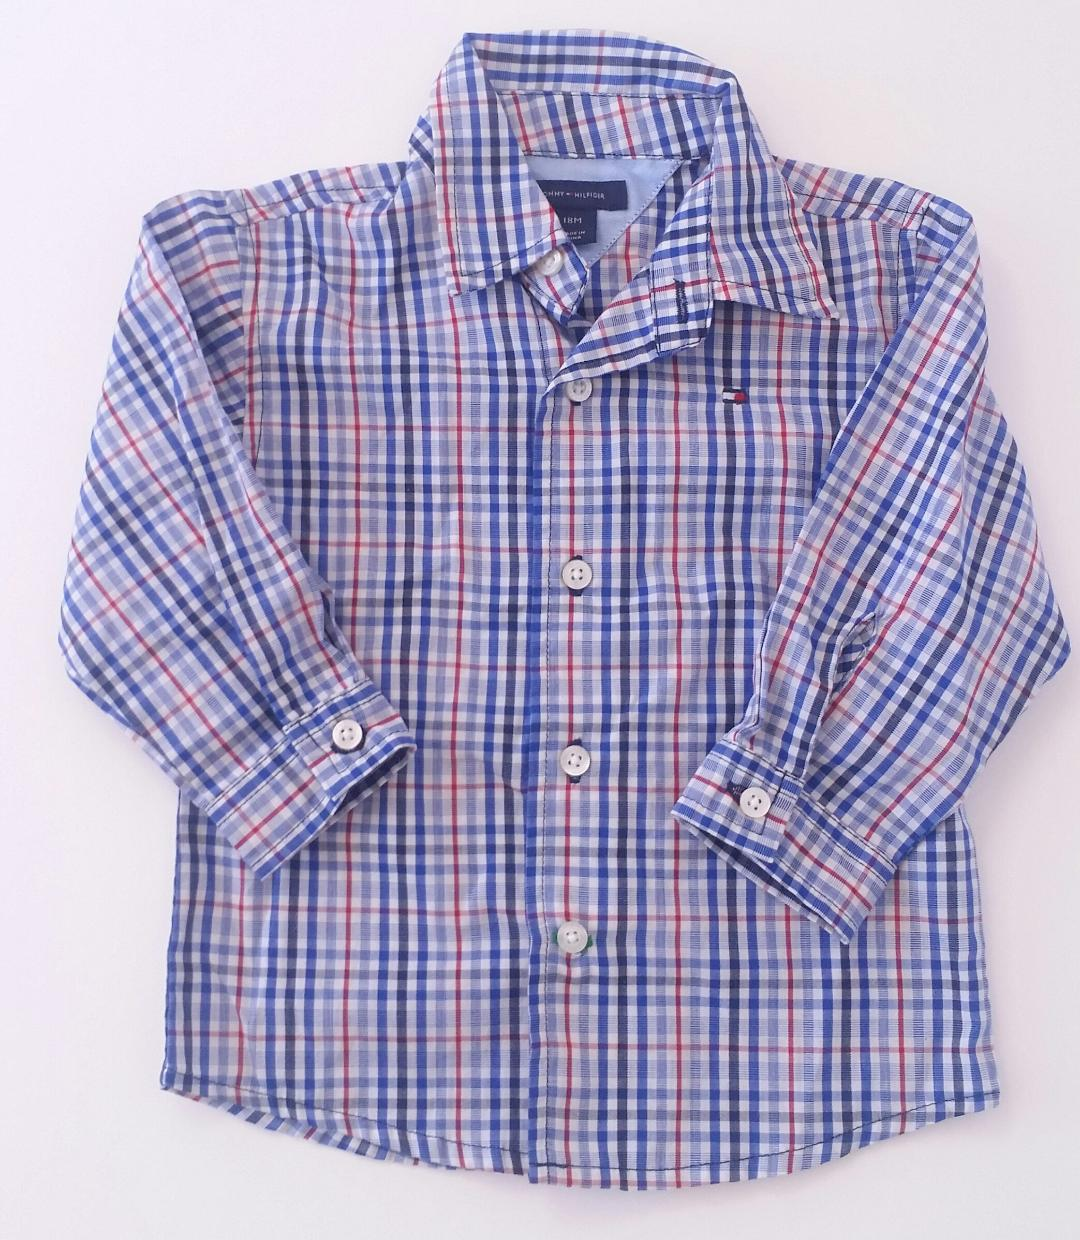 Tommy-Hilfiger-18-24-MONTHS-Plaid-Shirt_2138898A.jpg